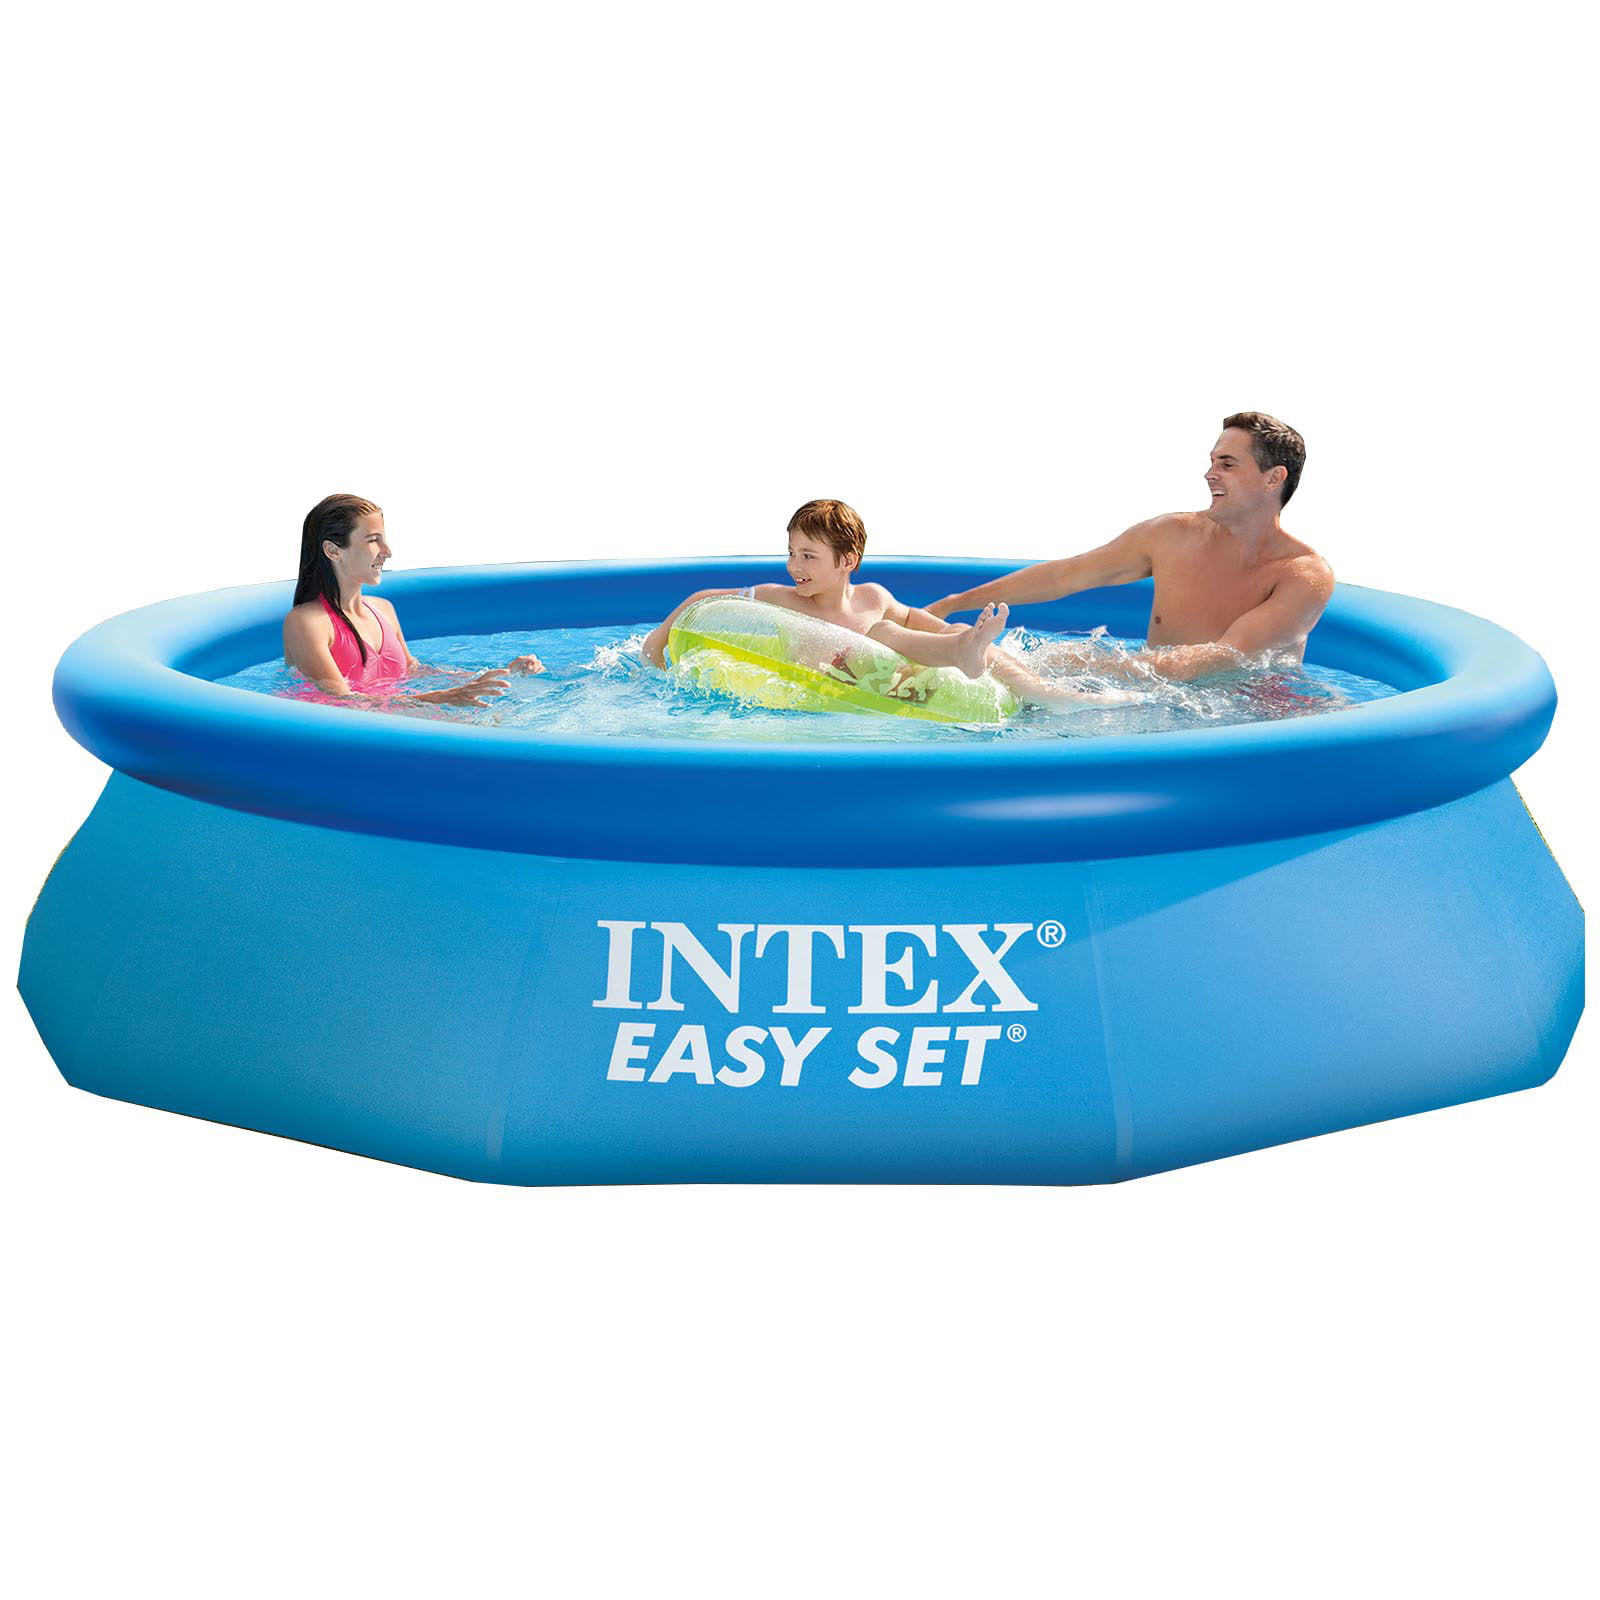 Intex 10 X 30 Easy Set Above Ground Inflatable Family